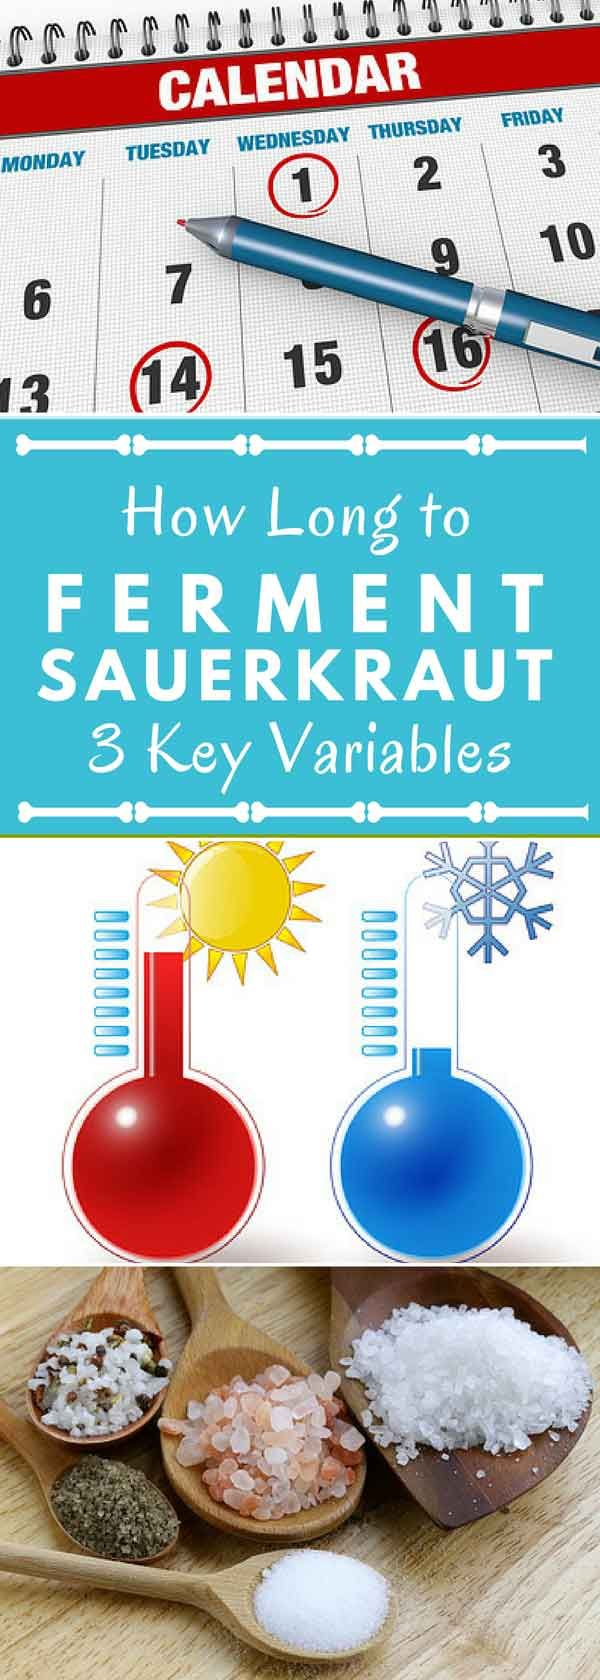 Fermenting sauerkraut? Want to know how long to ferment it? http://www.makesauerkraut.com/how-long-to-ferment-sauerkraut/